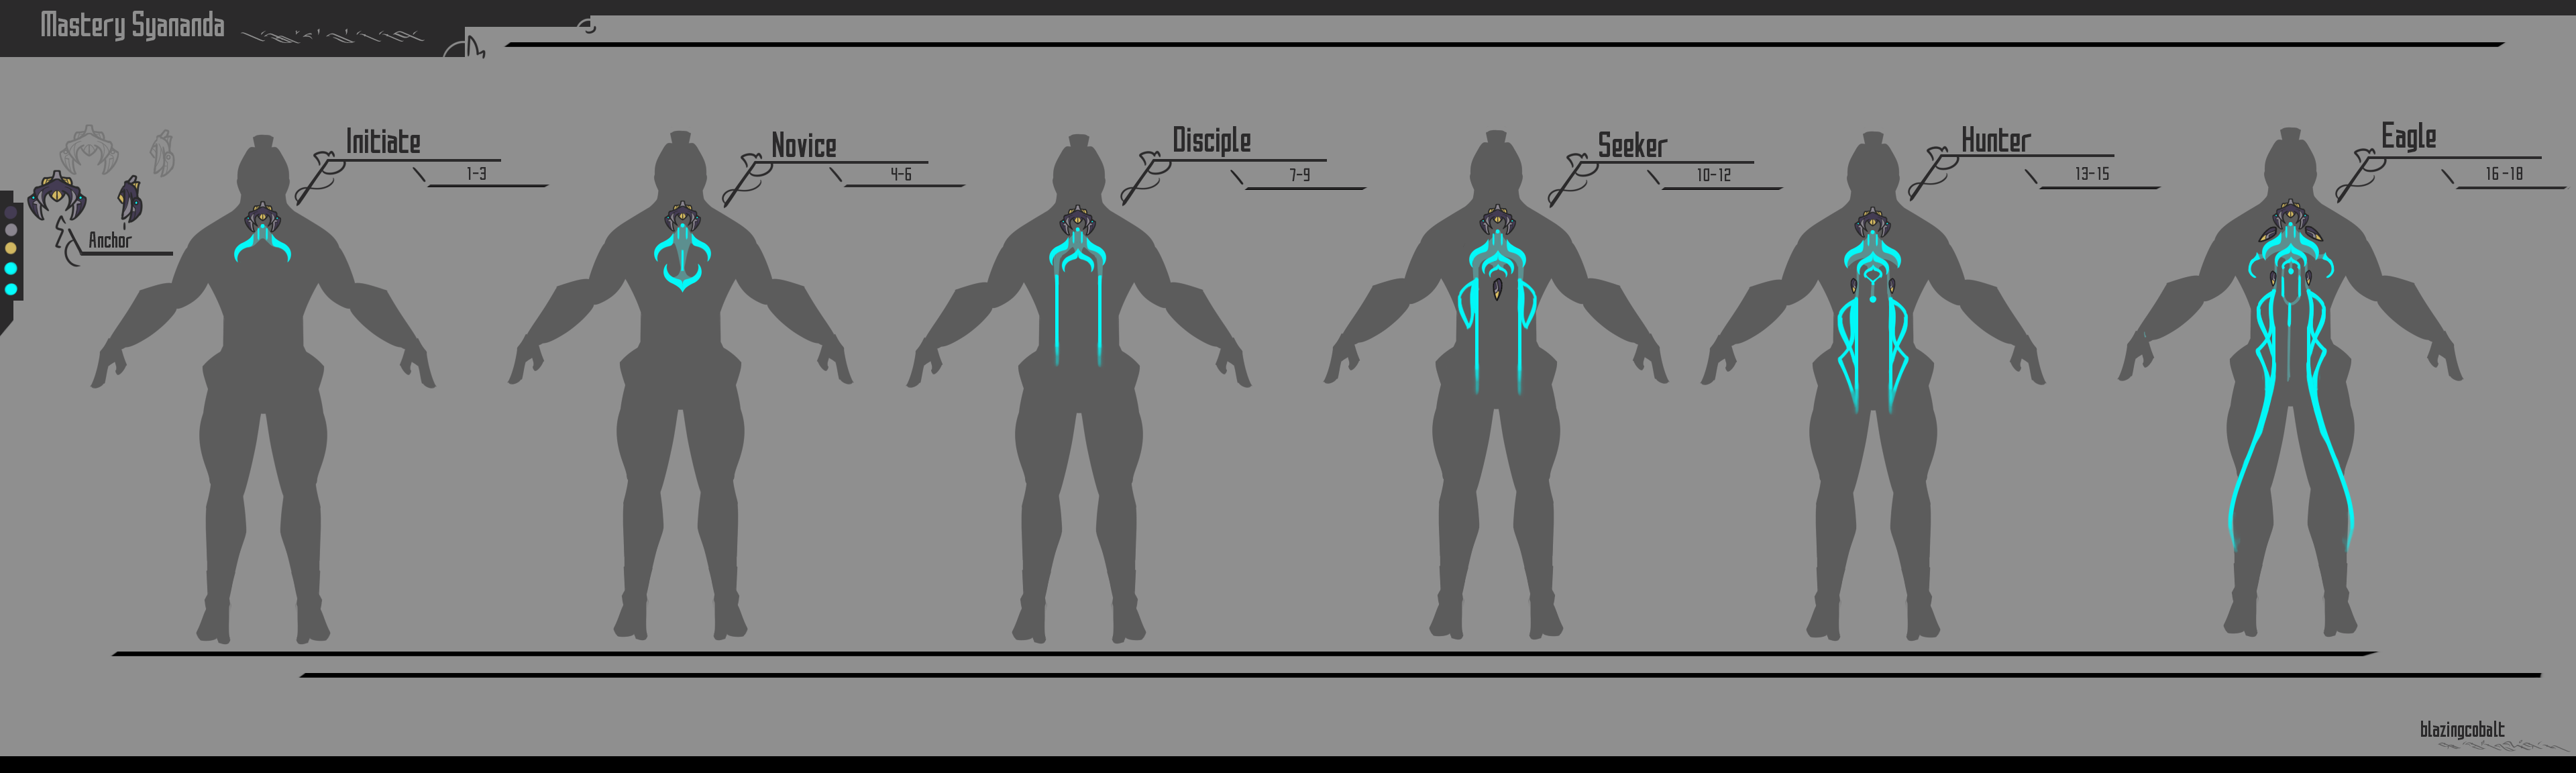 Mastery Rank Syandanas Armors Artwork Gif Fan Concepts